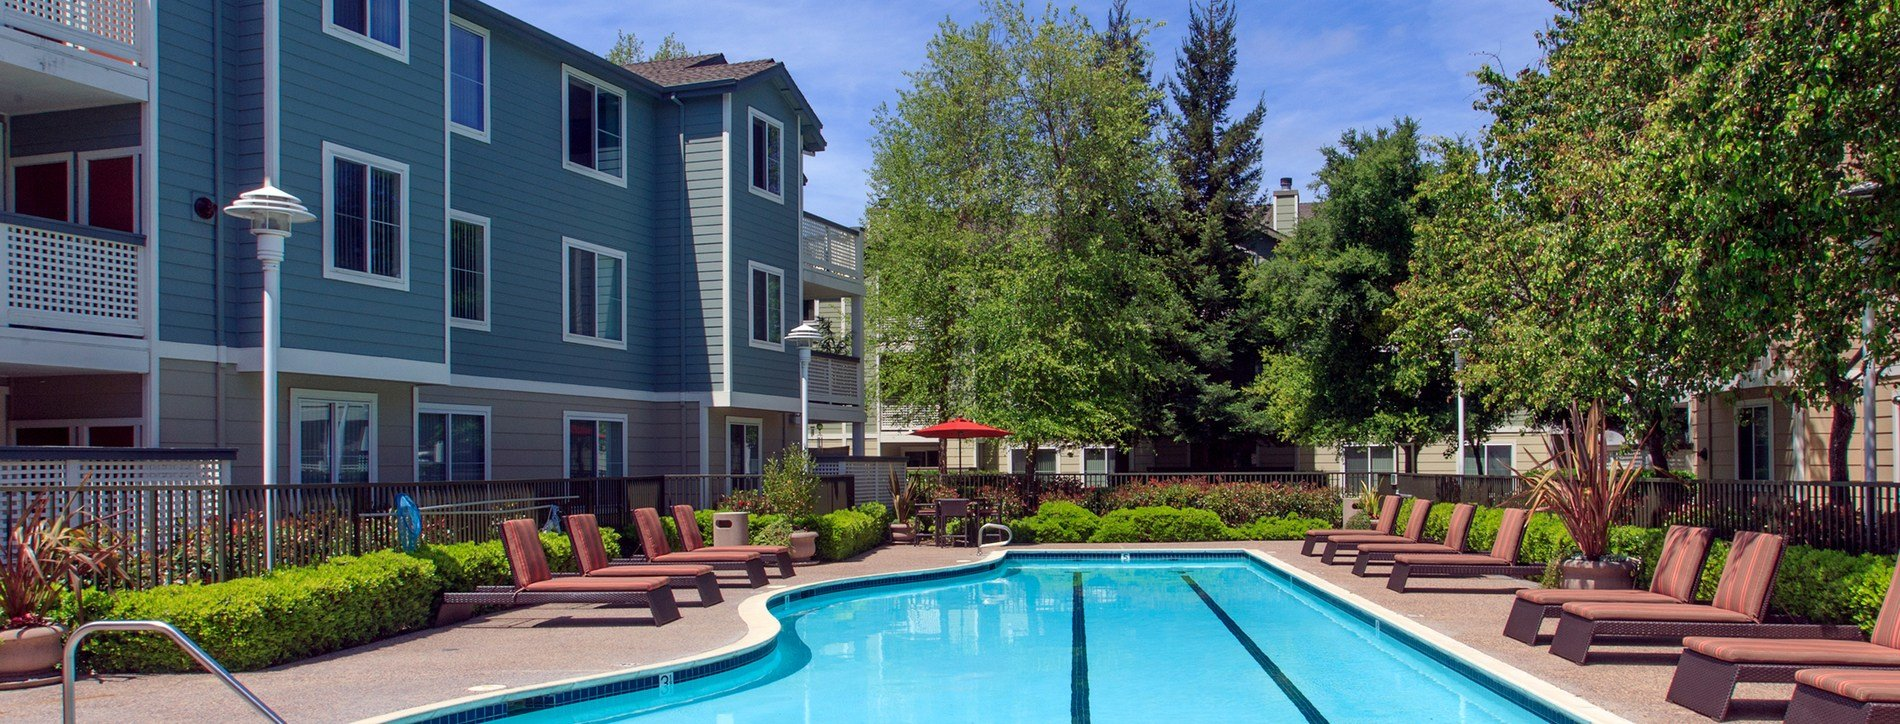 Best 7 Two Bedroom Apartments In Hayward Ca Facefabskin Com With Pictures